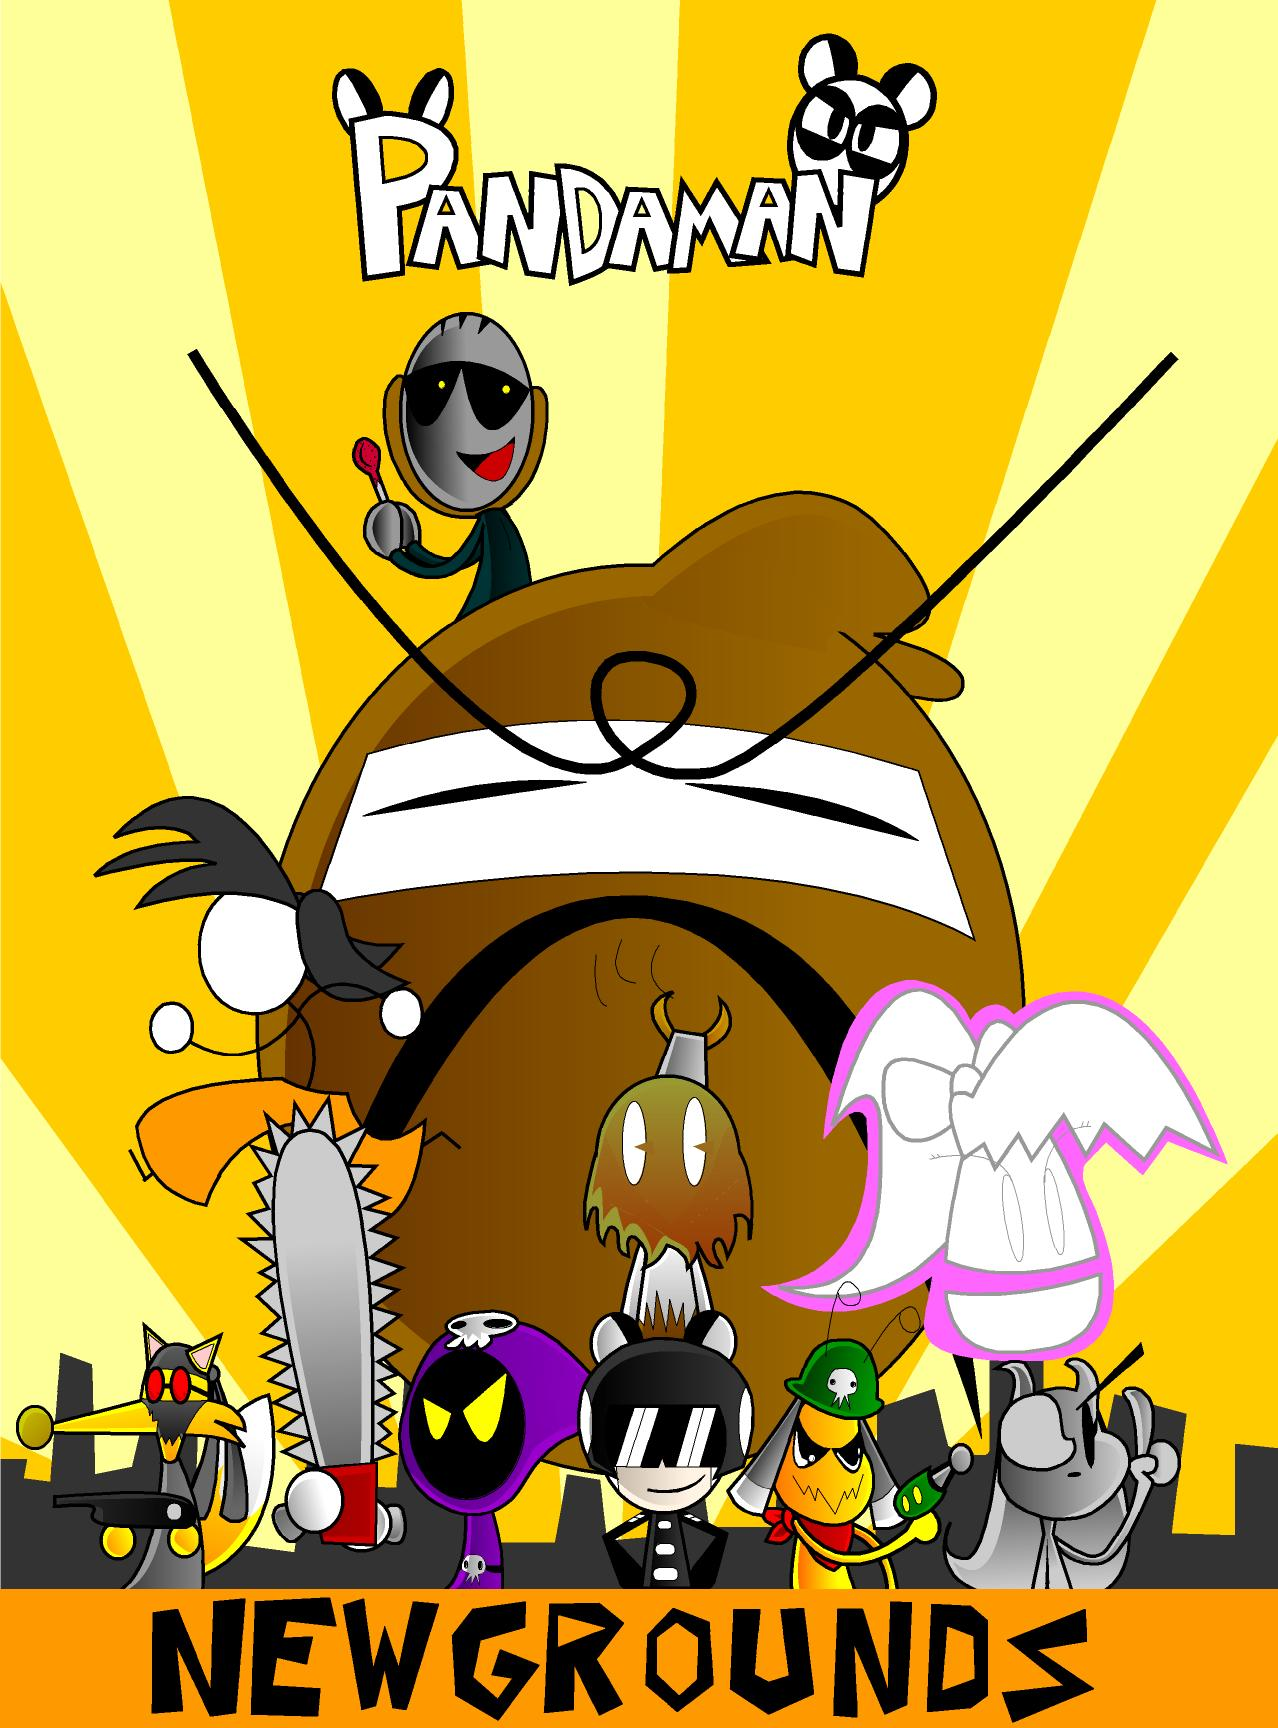 Pandaman Newgrounds